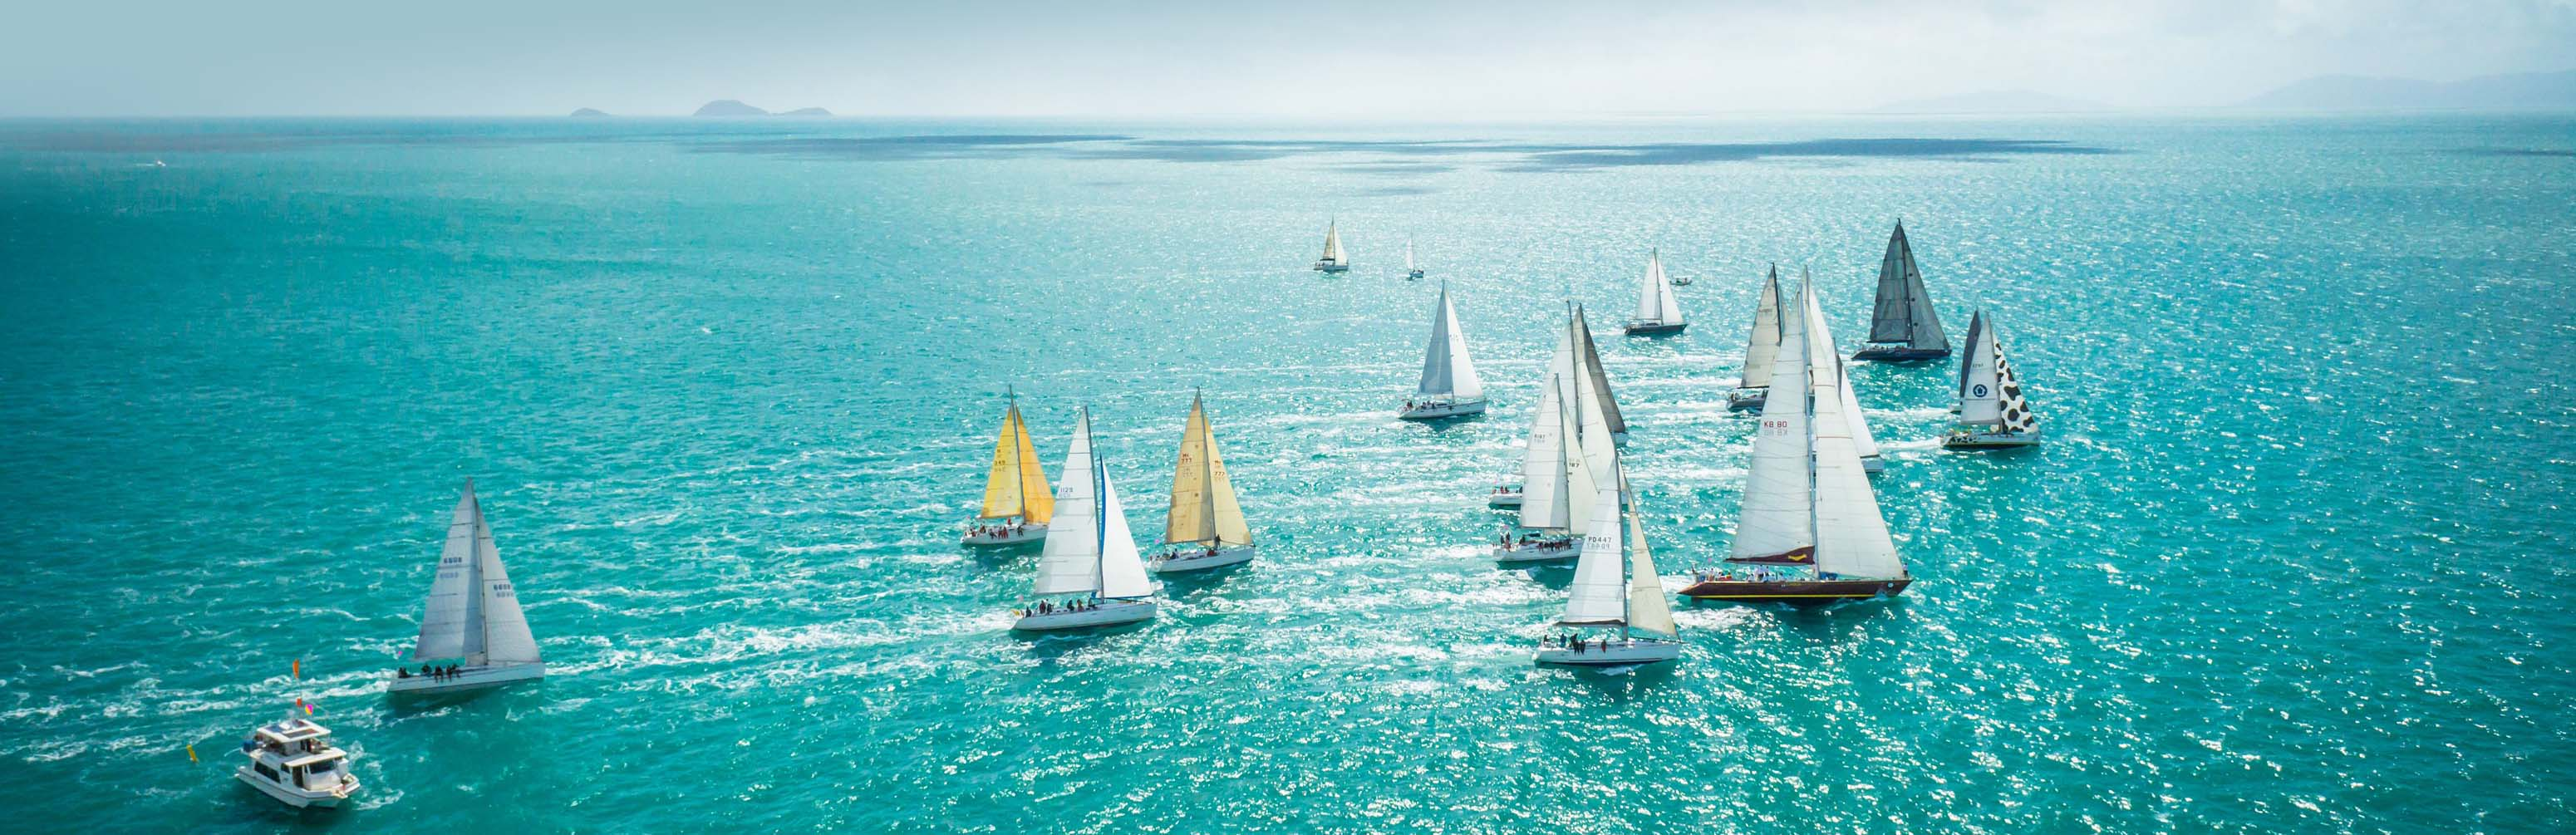 Airlie Beach Race Week Special   Charter Yachts Australia